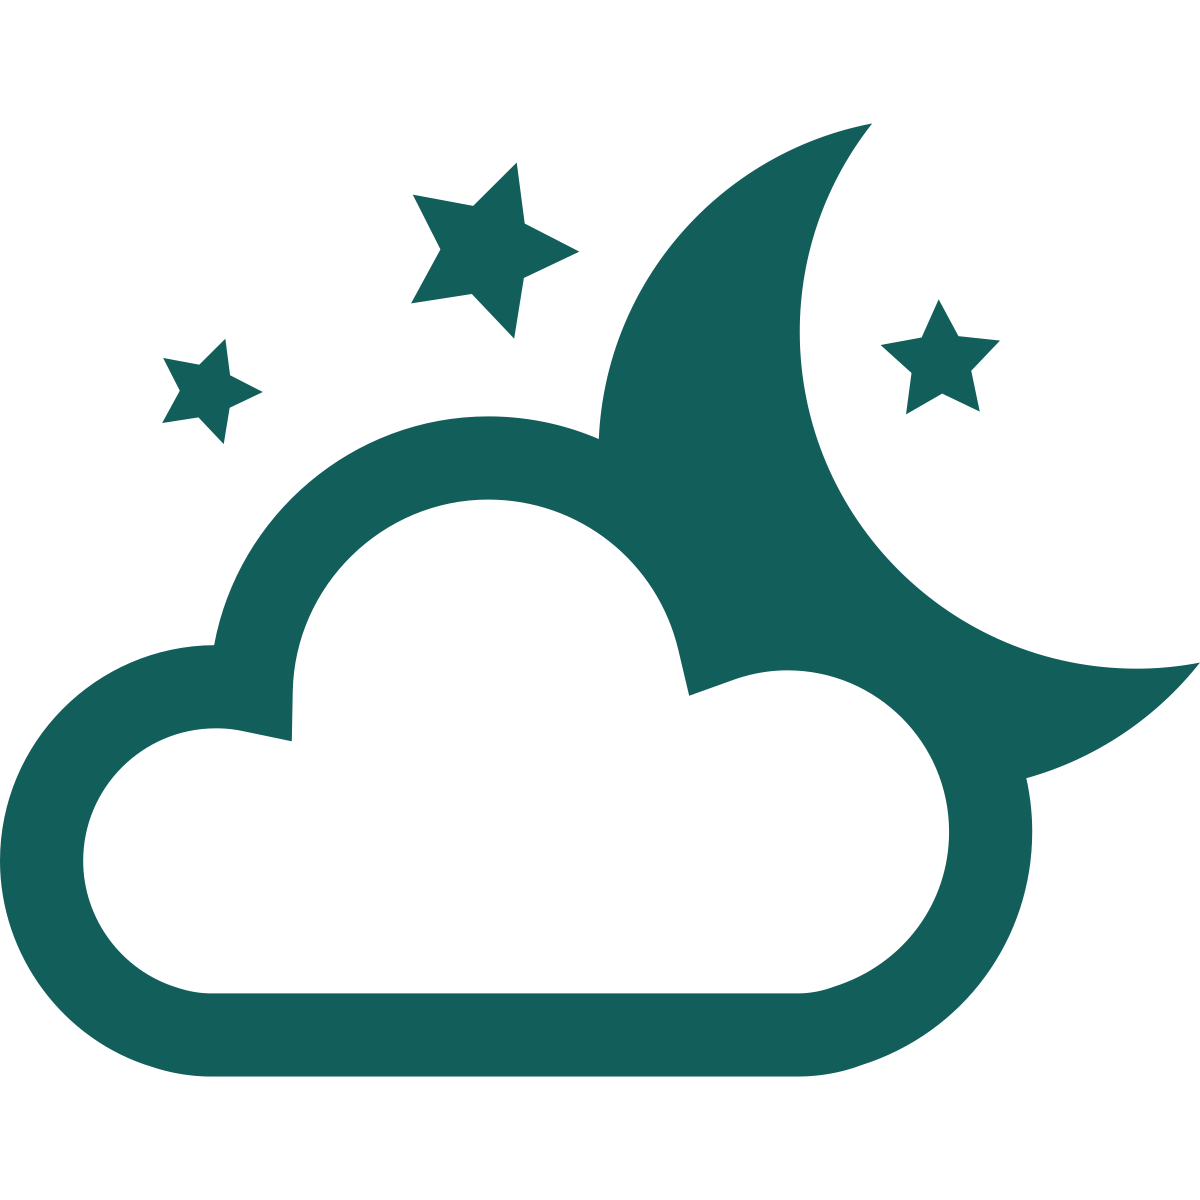 A cloud, moon, and stars icon